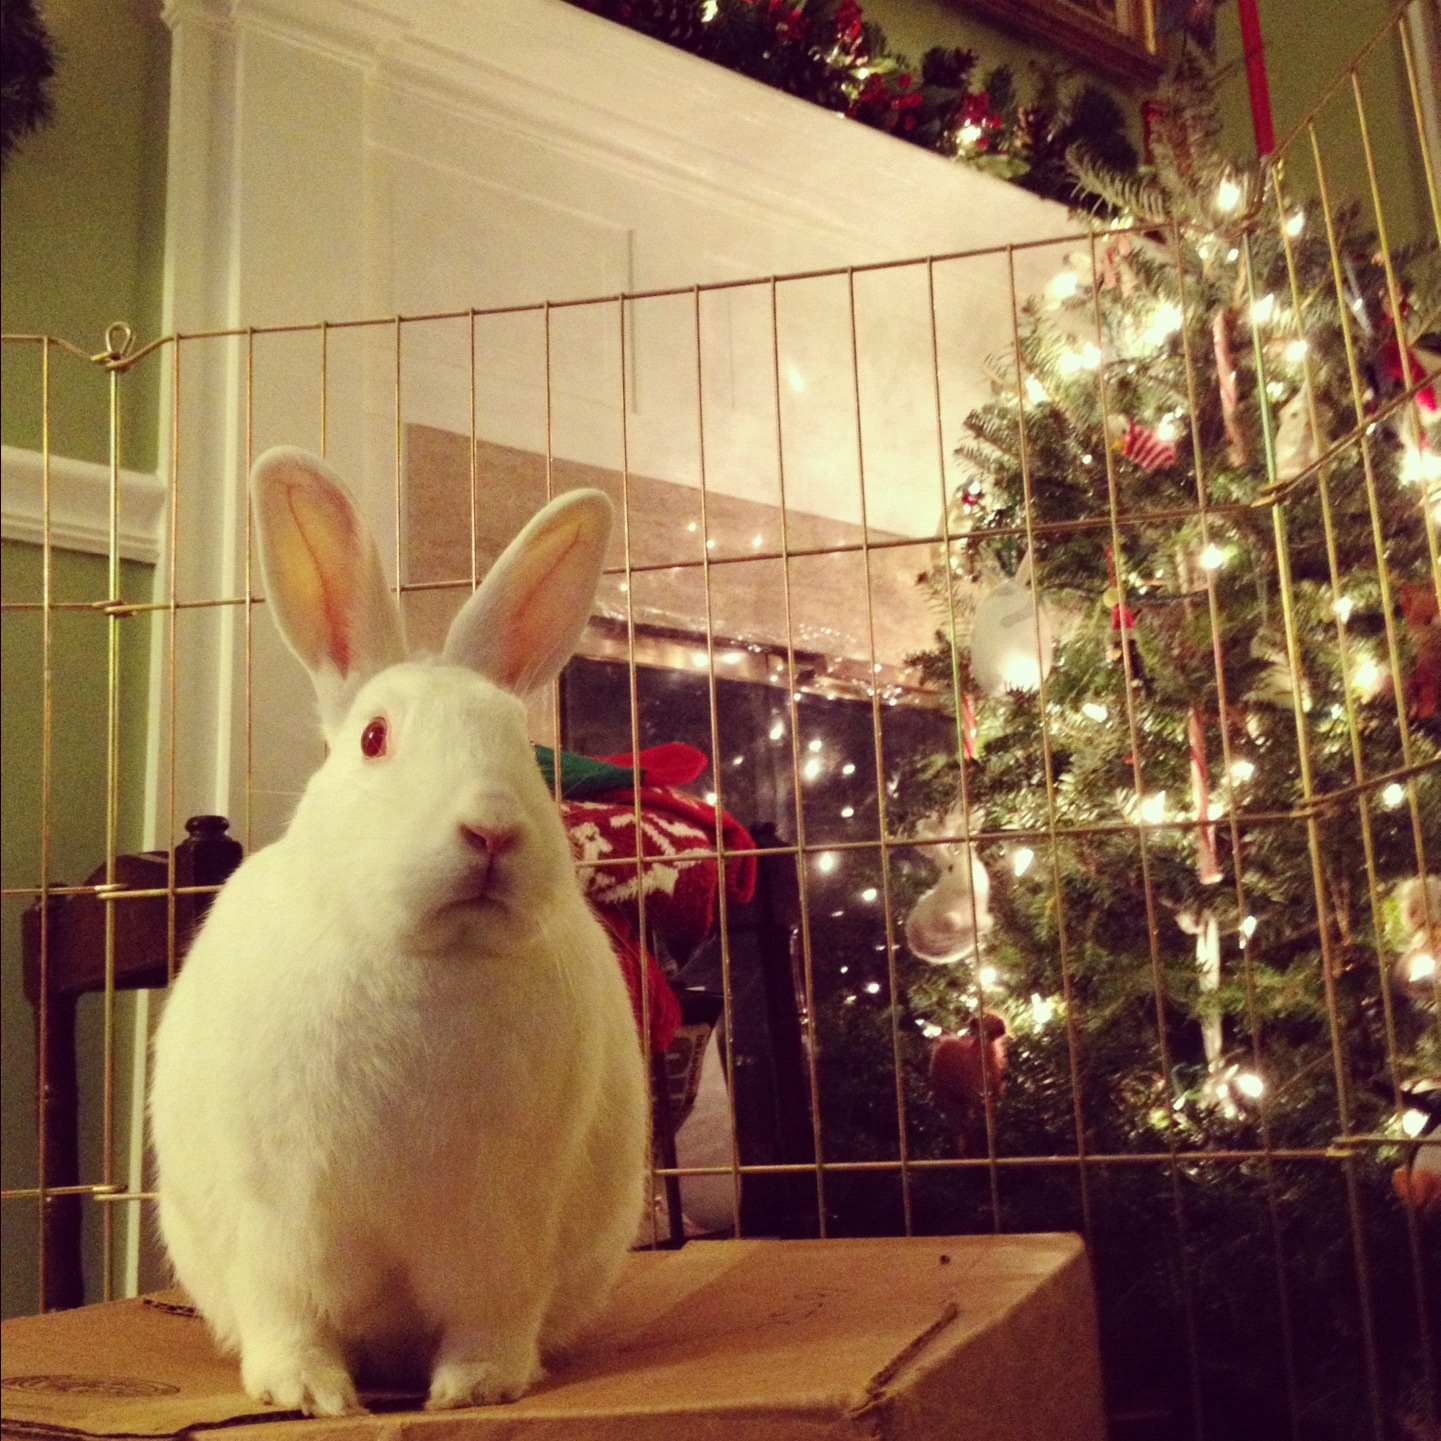 Bunny Disapproves of the Tree and Would Like to Redecorate It Her Own Way